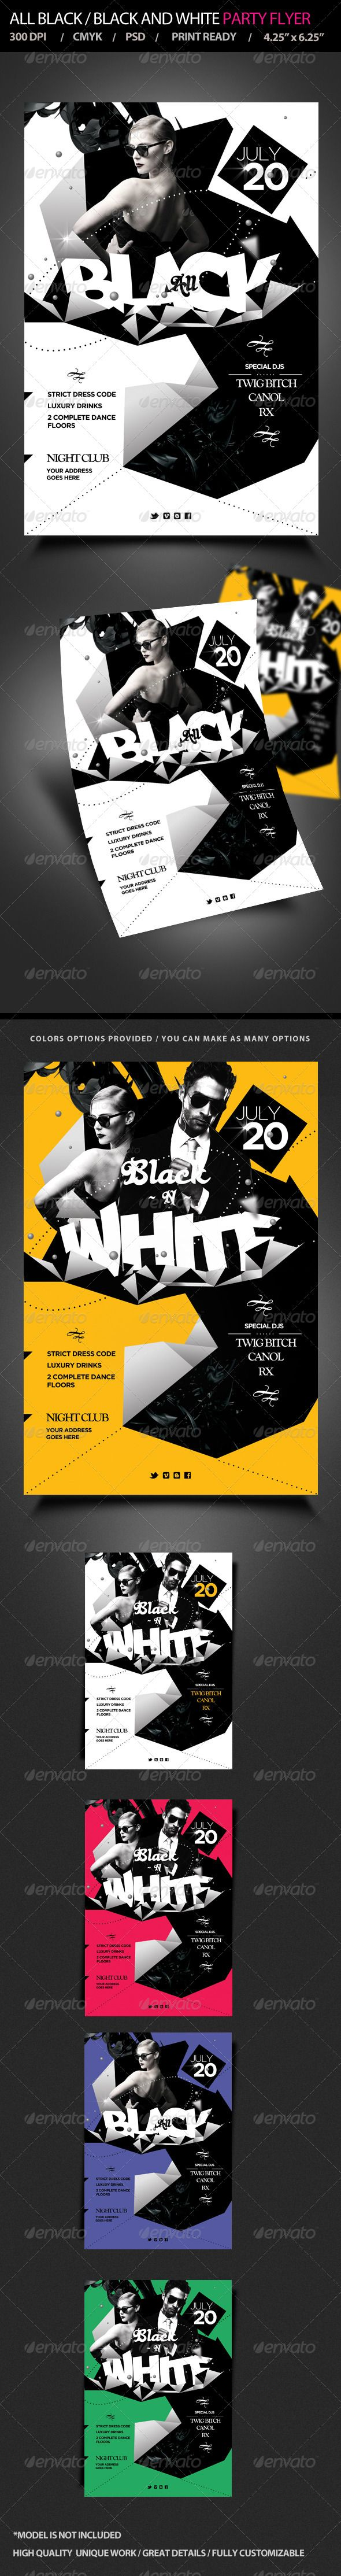 All Black / Black and White  Party Flyer